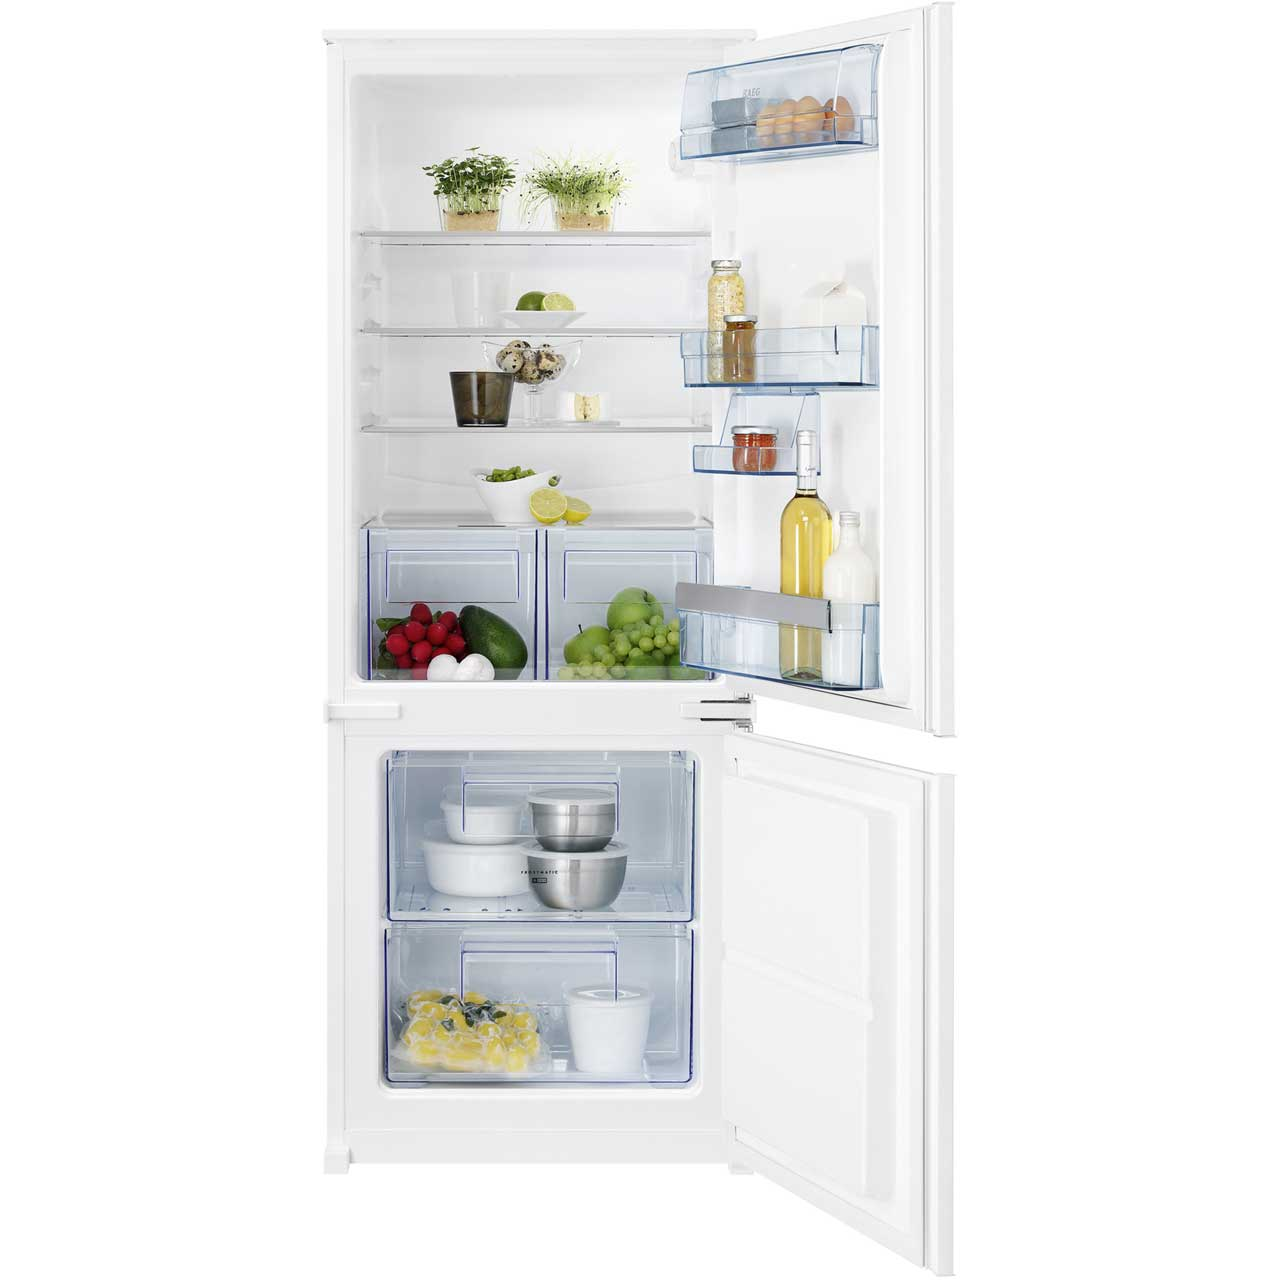 AEG SCS61400S2 Integrated Fridge Freezer in White